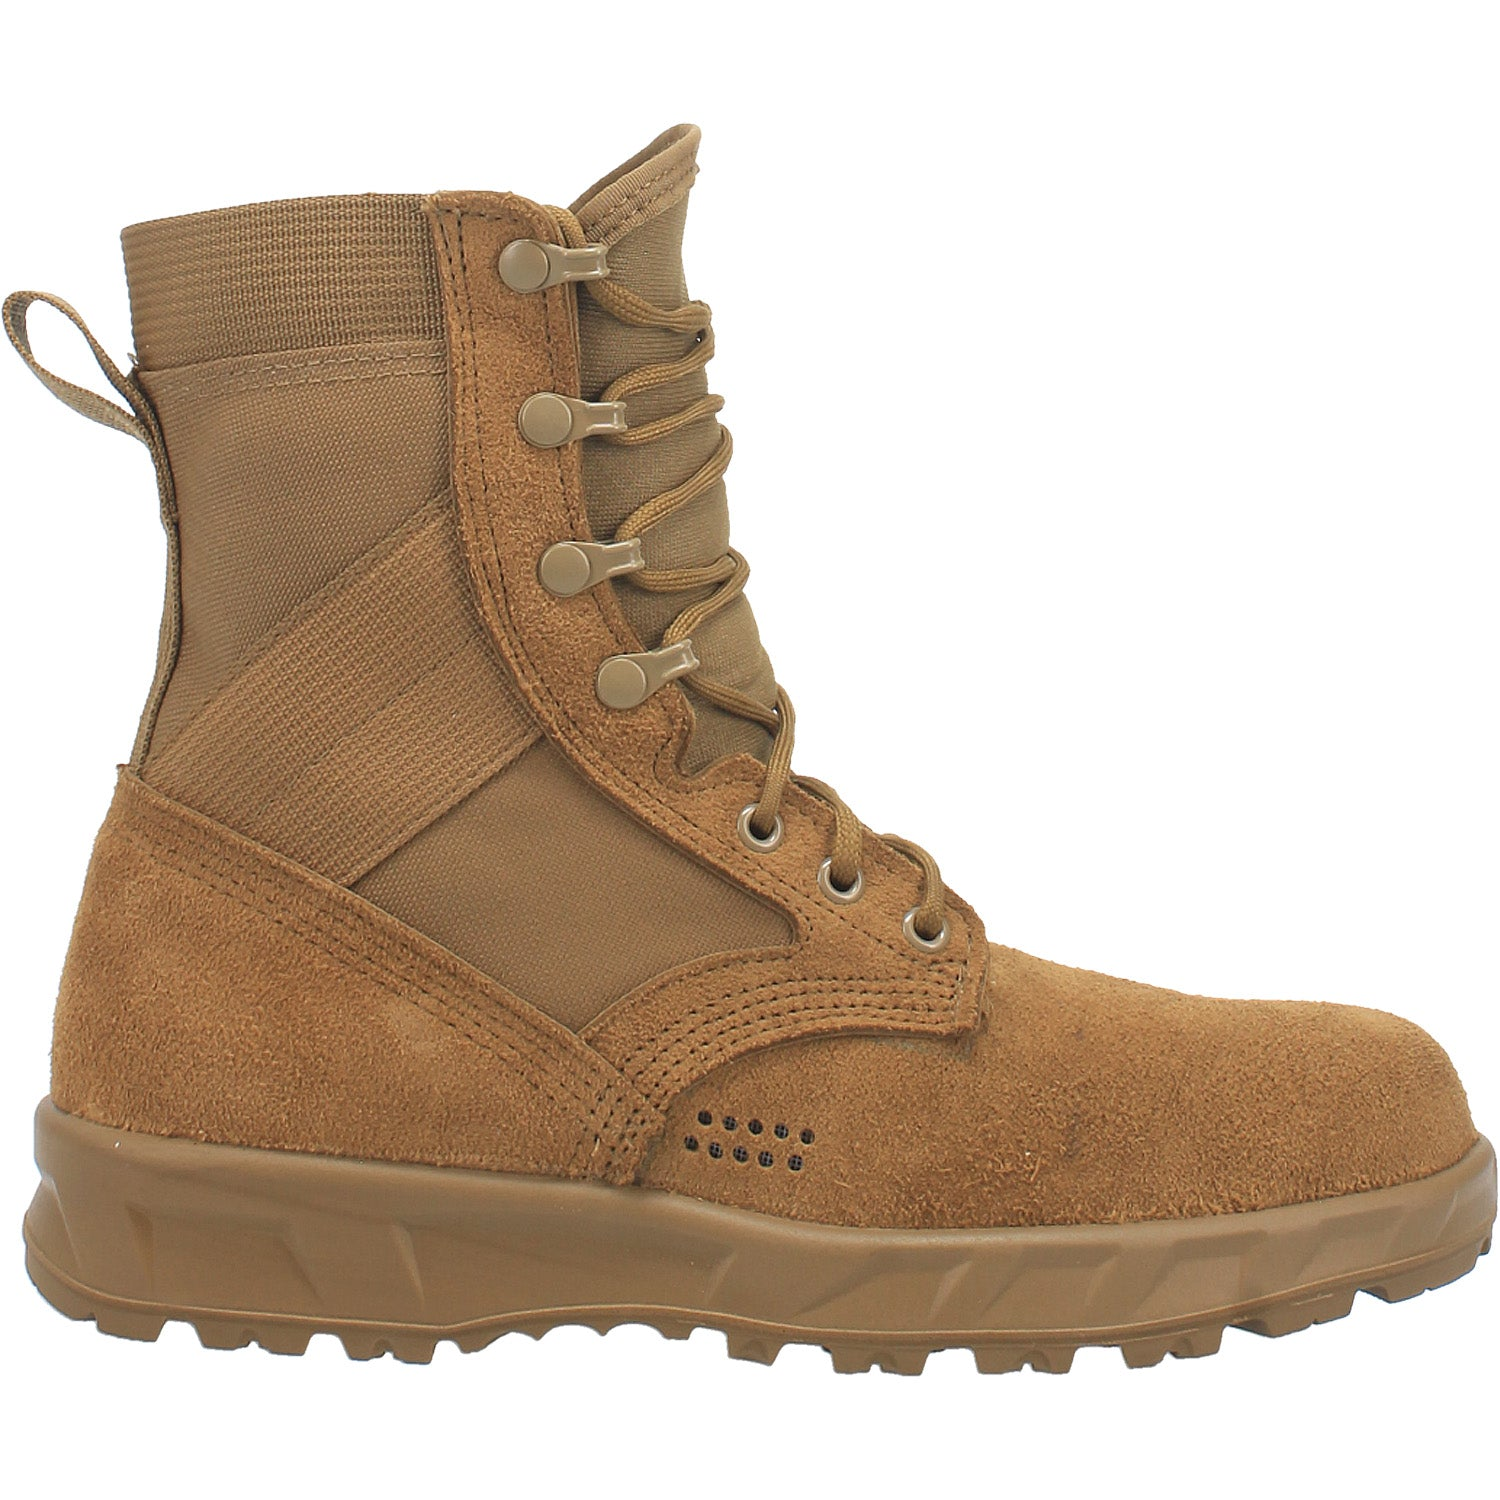 T2 Ultra Light Hot Weather Combat Boot 14940793176106